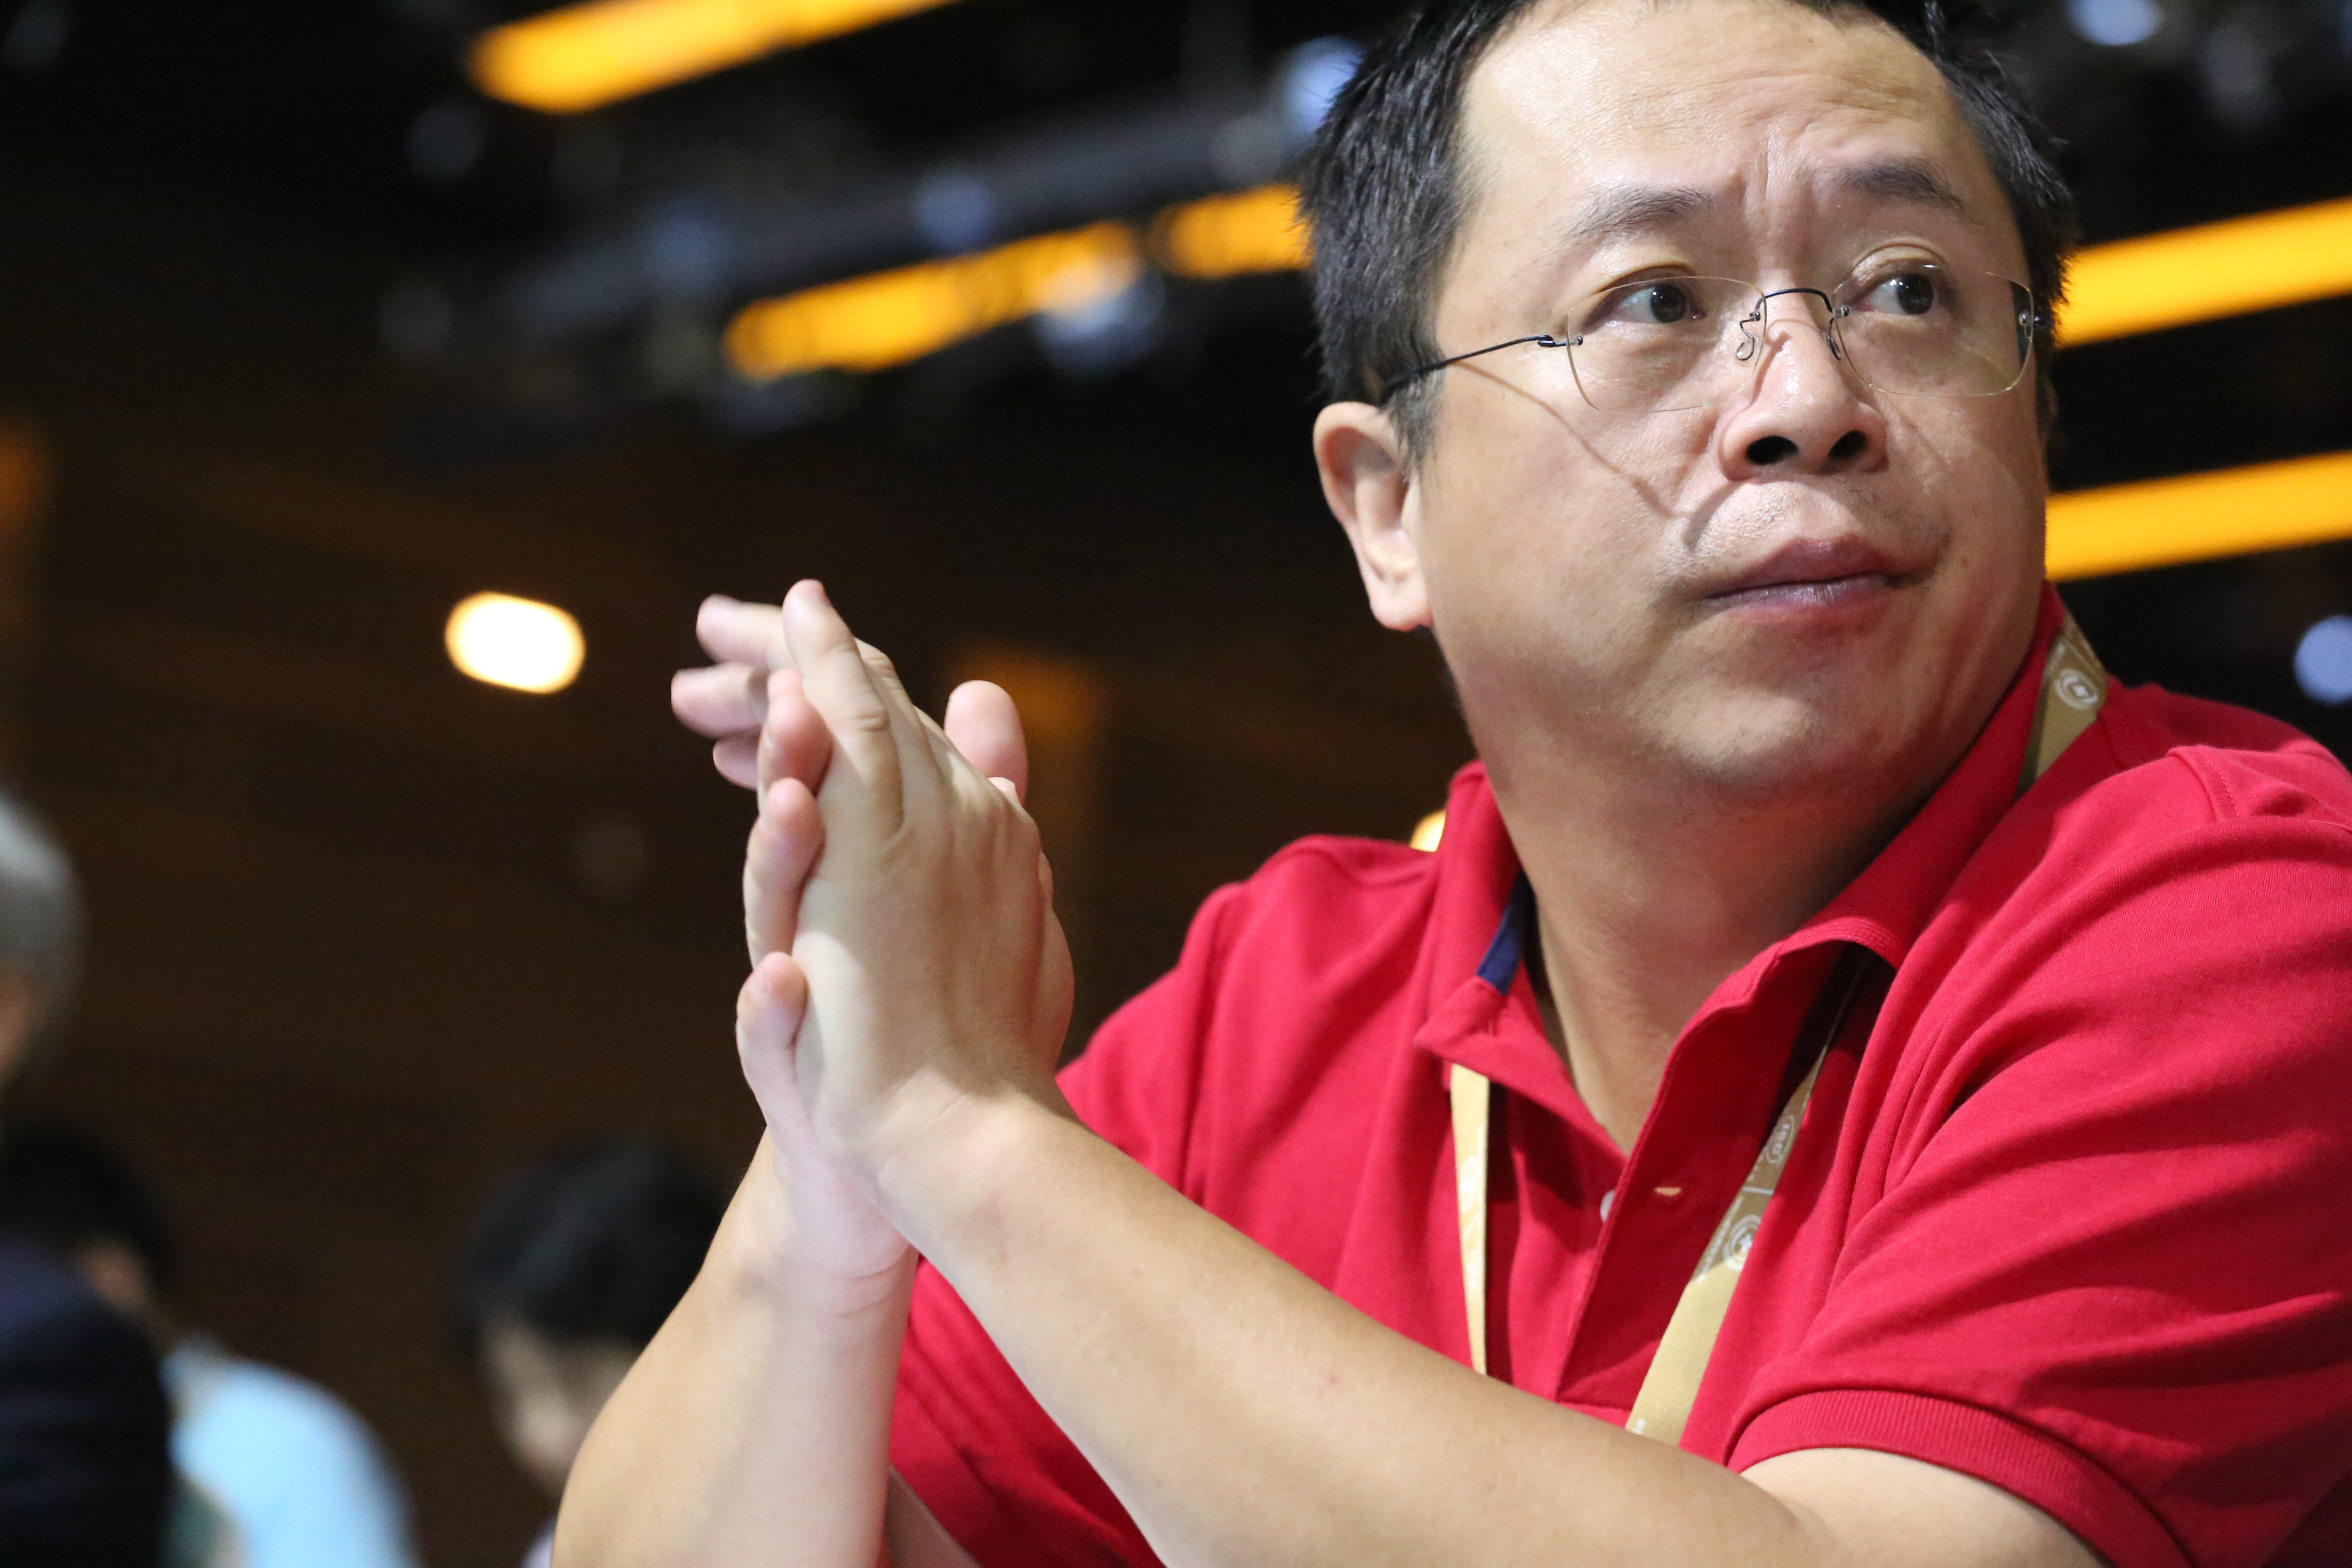 Zhou Hongyi, CEO of 360 Security Technology, appears at a conference in Beijing.